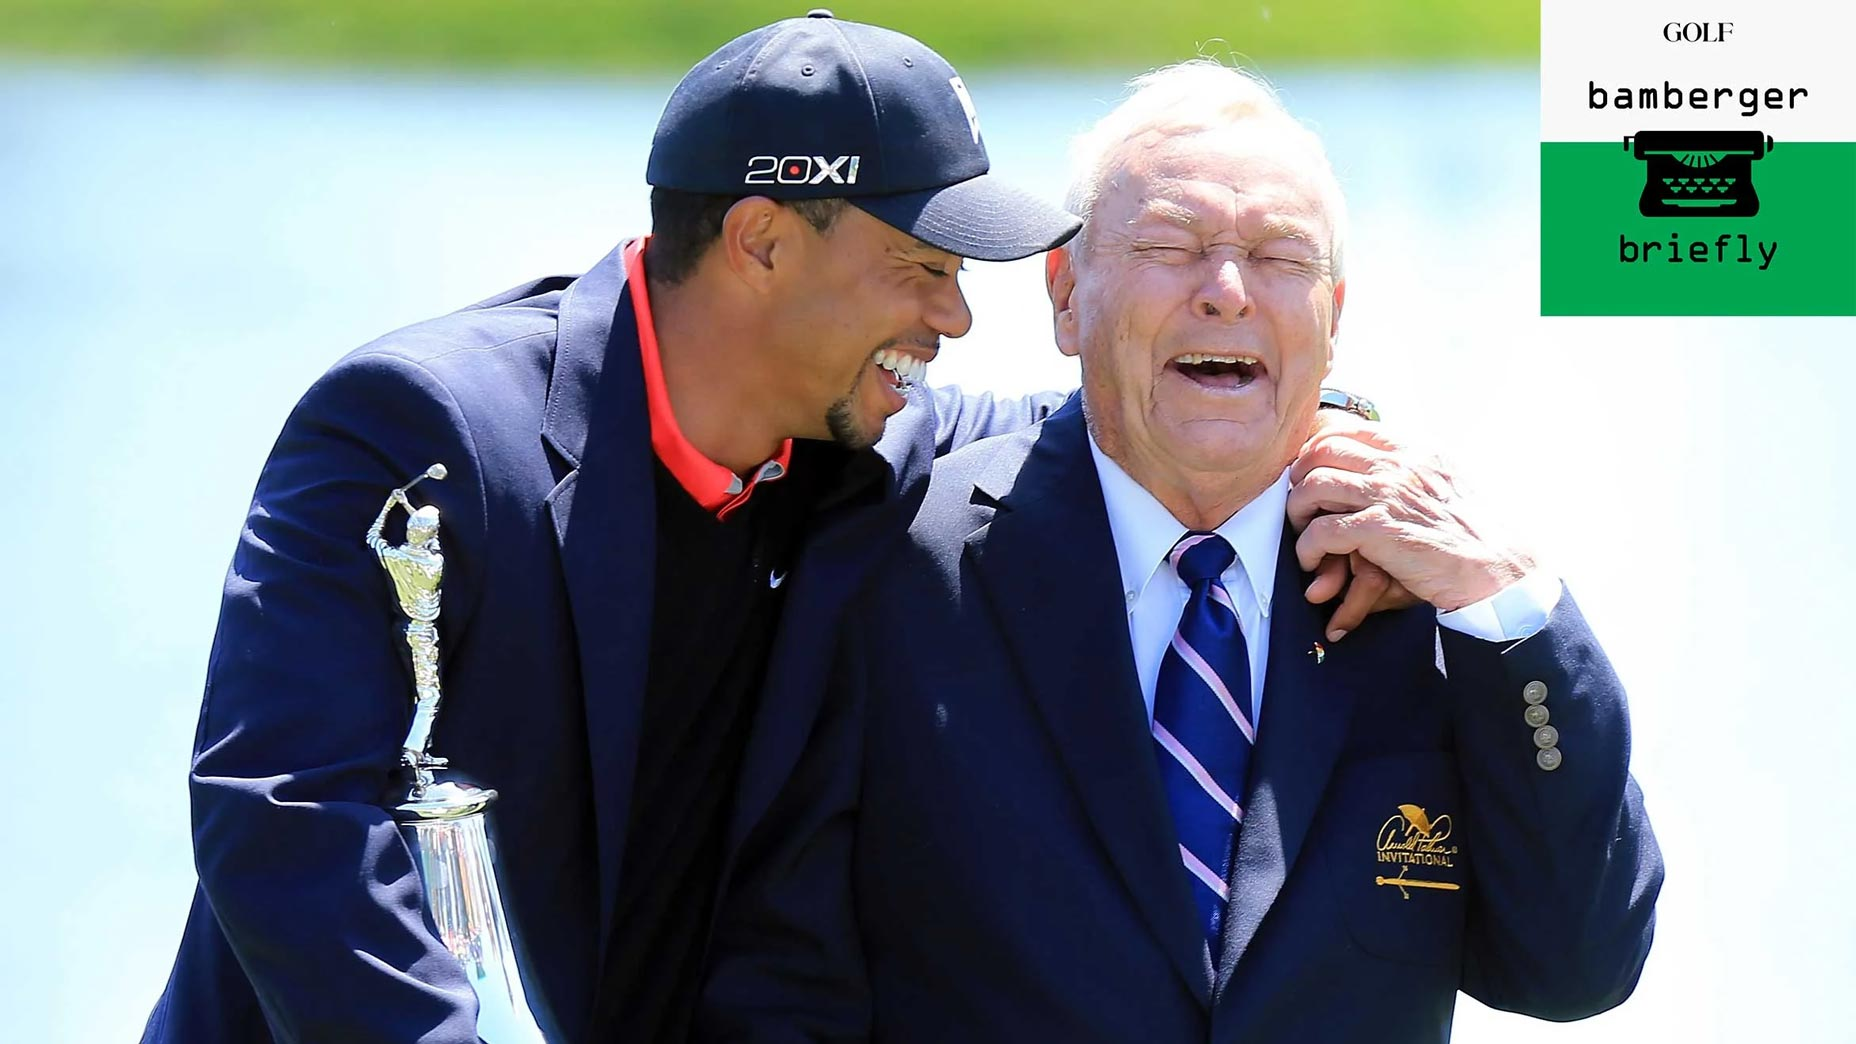 arnold palmer and tiger woods at bay hill